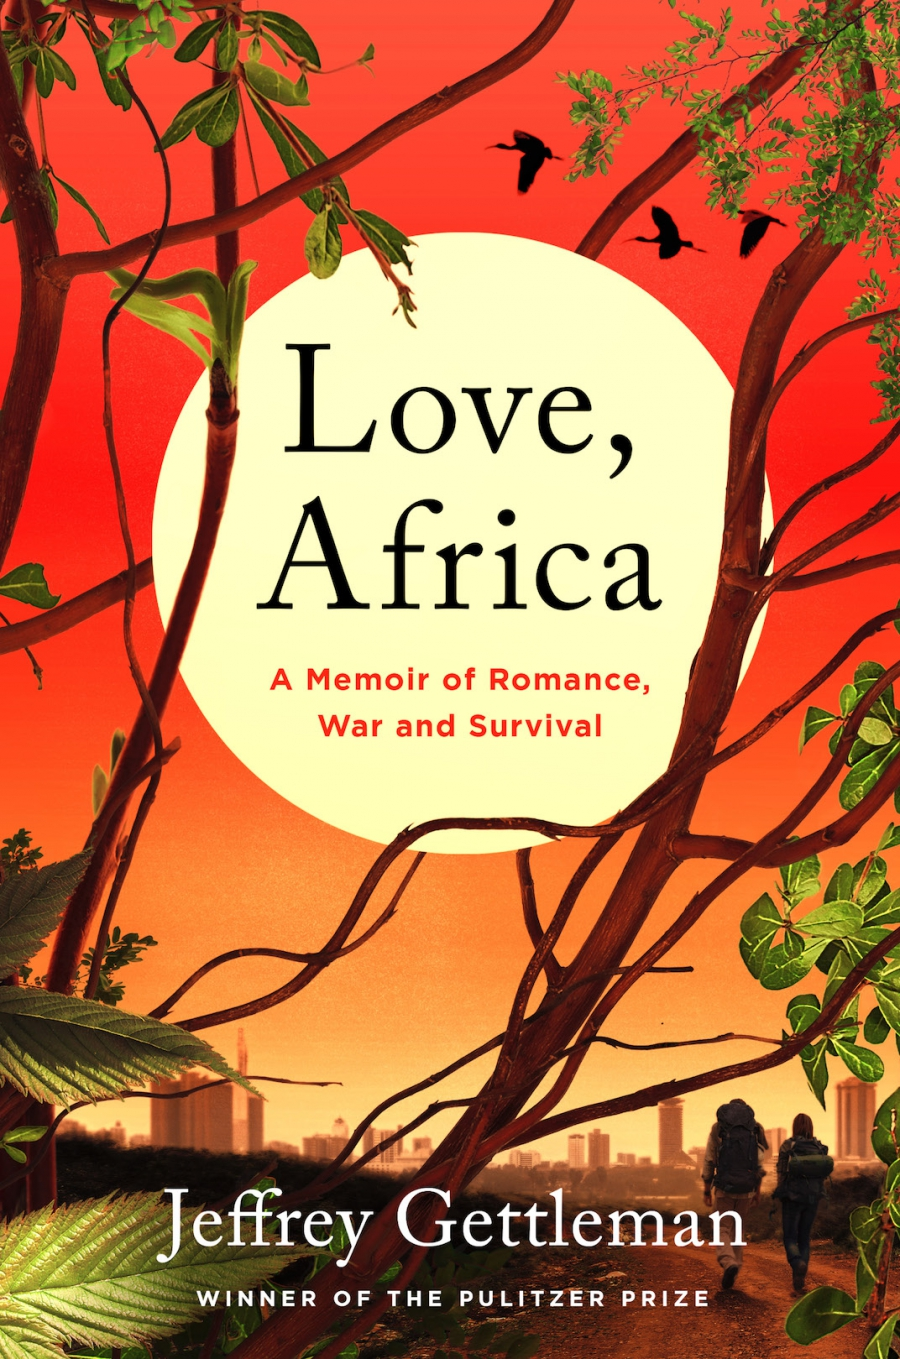 Love, Africa - new book by Jeffrey Gettleman